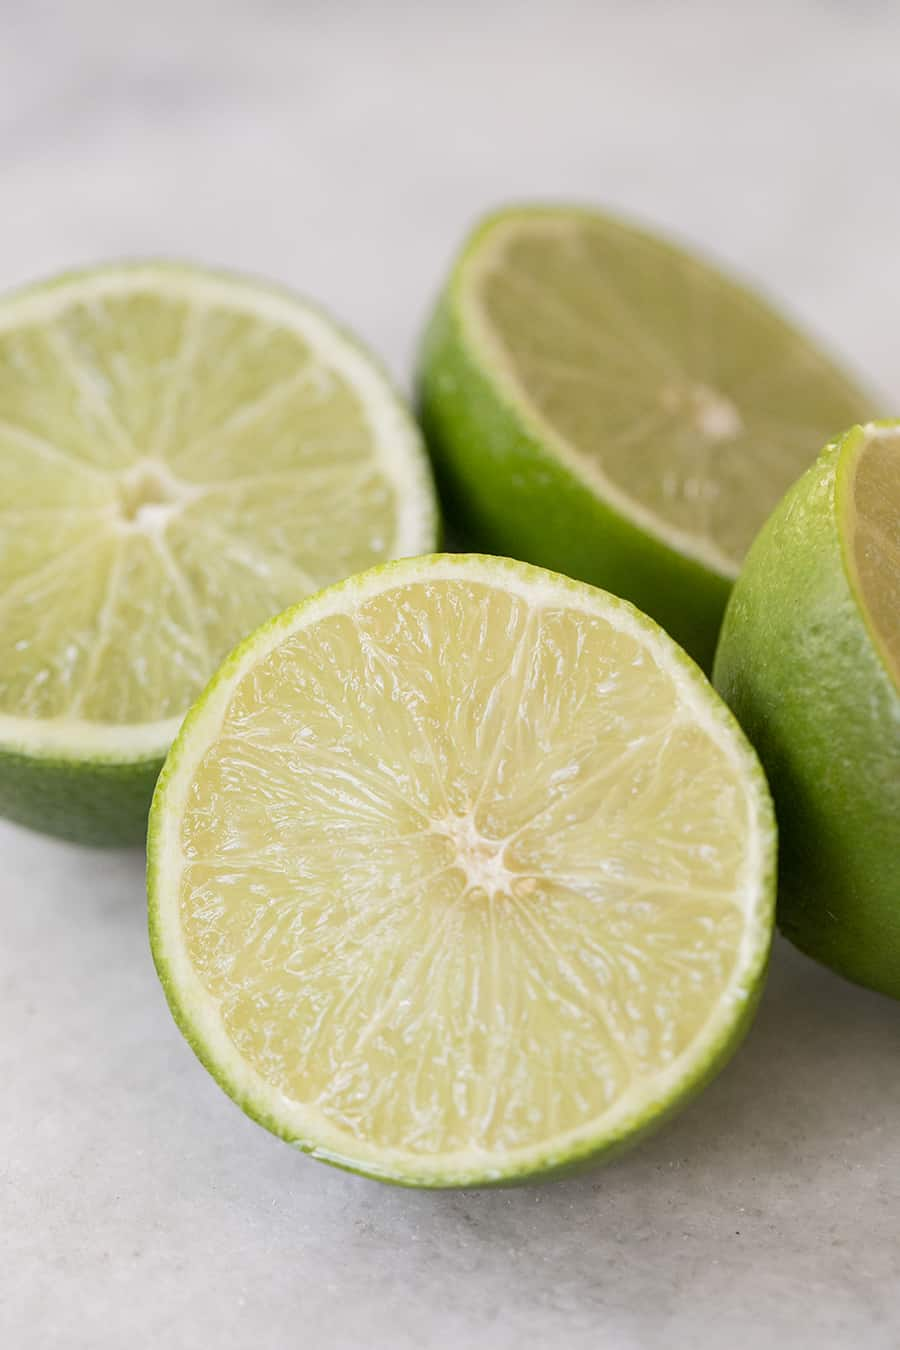 Close-up picture of limes sliced in half.